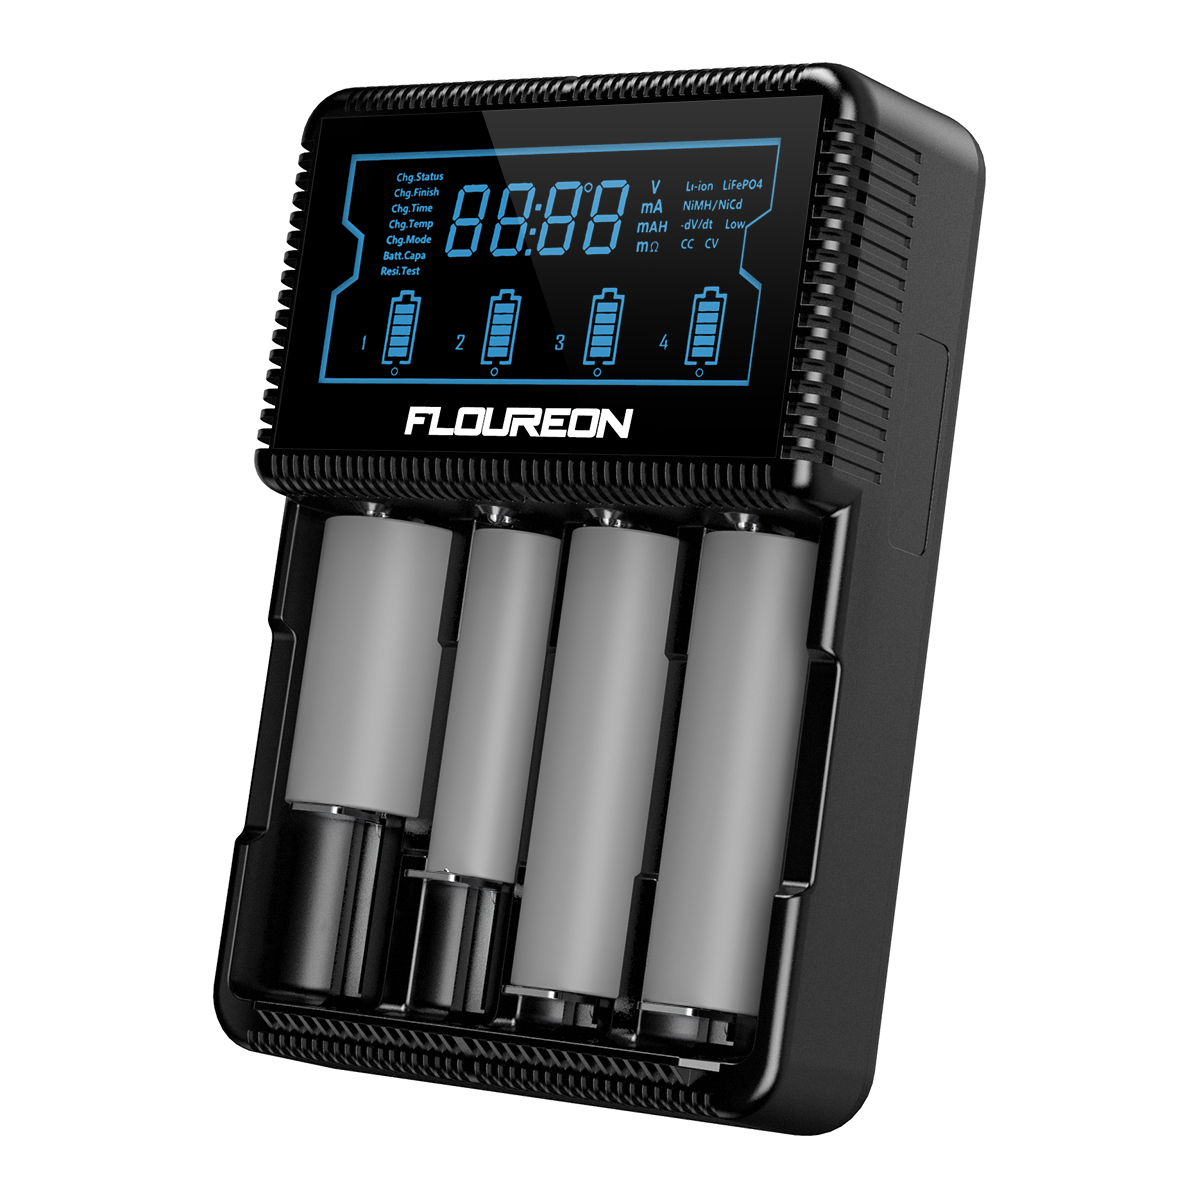 Floureon Universal Smart Battery Charger with LCD Display, Power Adapter, Car Adapter for Rechargeable Batteries Ni-MH AA AAA, Li-ion 26650 20700 21700 18650 18490 18350 17670 17500 16340 14500 10440